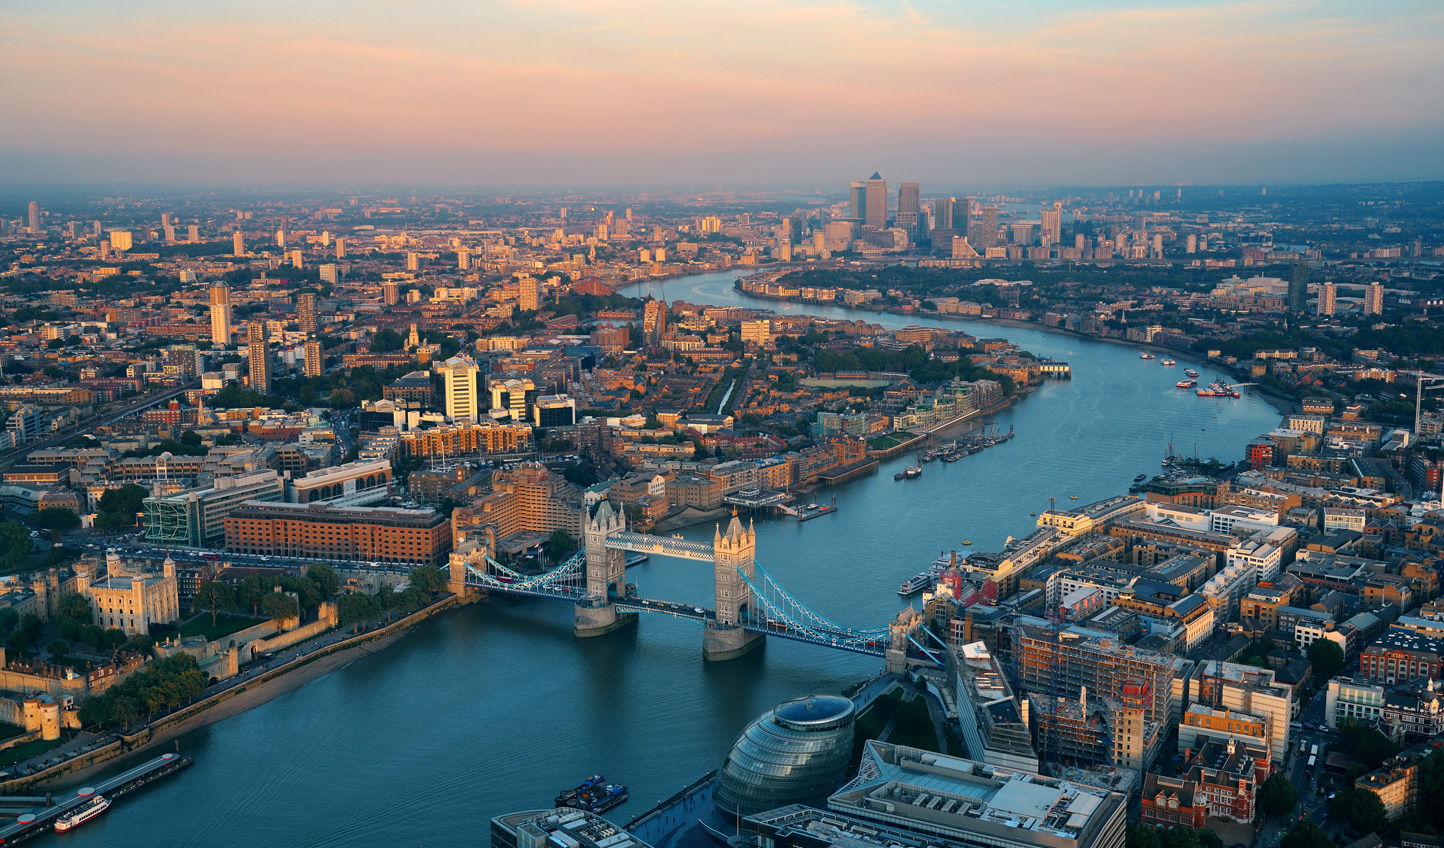 Get a bird's eye view of London